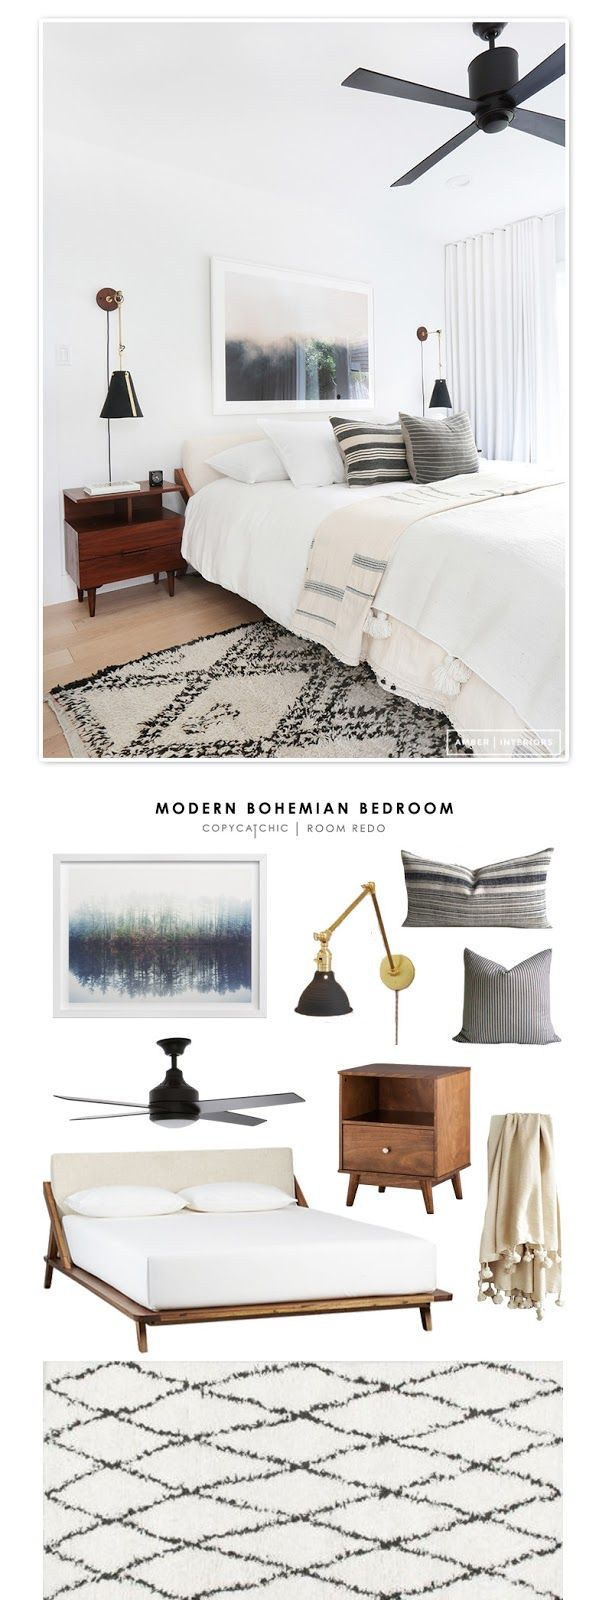 Copy Cat Chic Room Redo | Modern Bohemian Bedroom